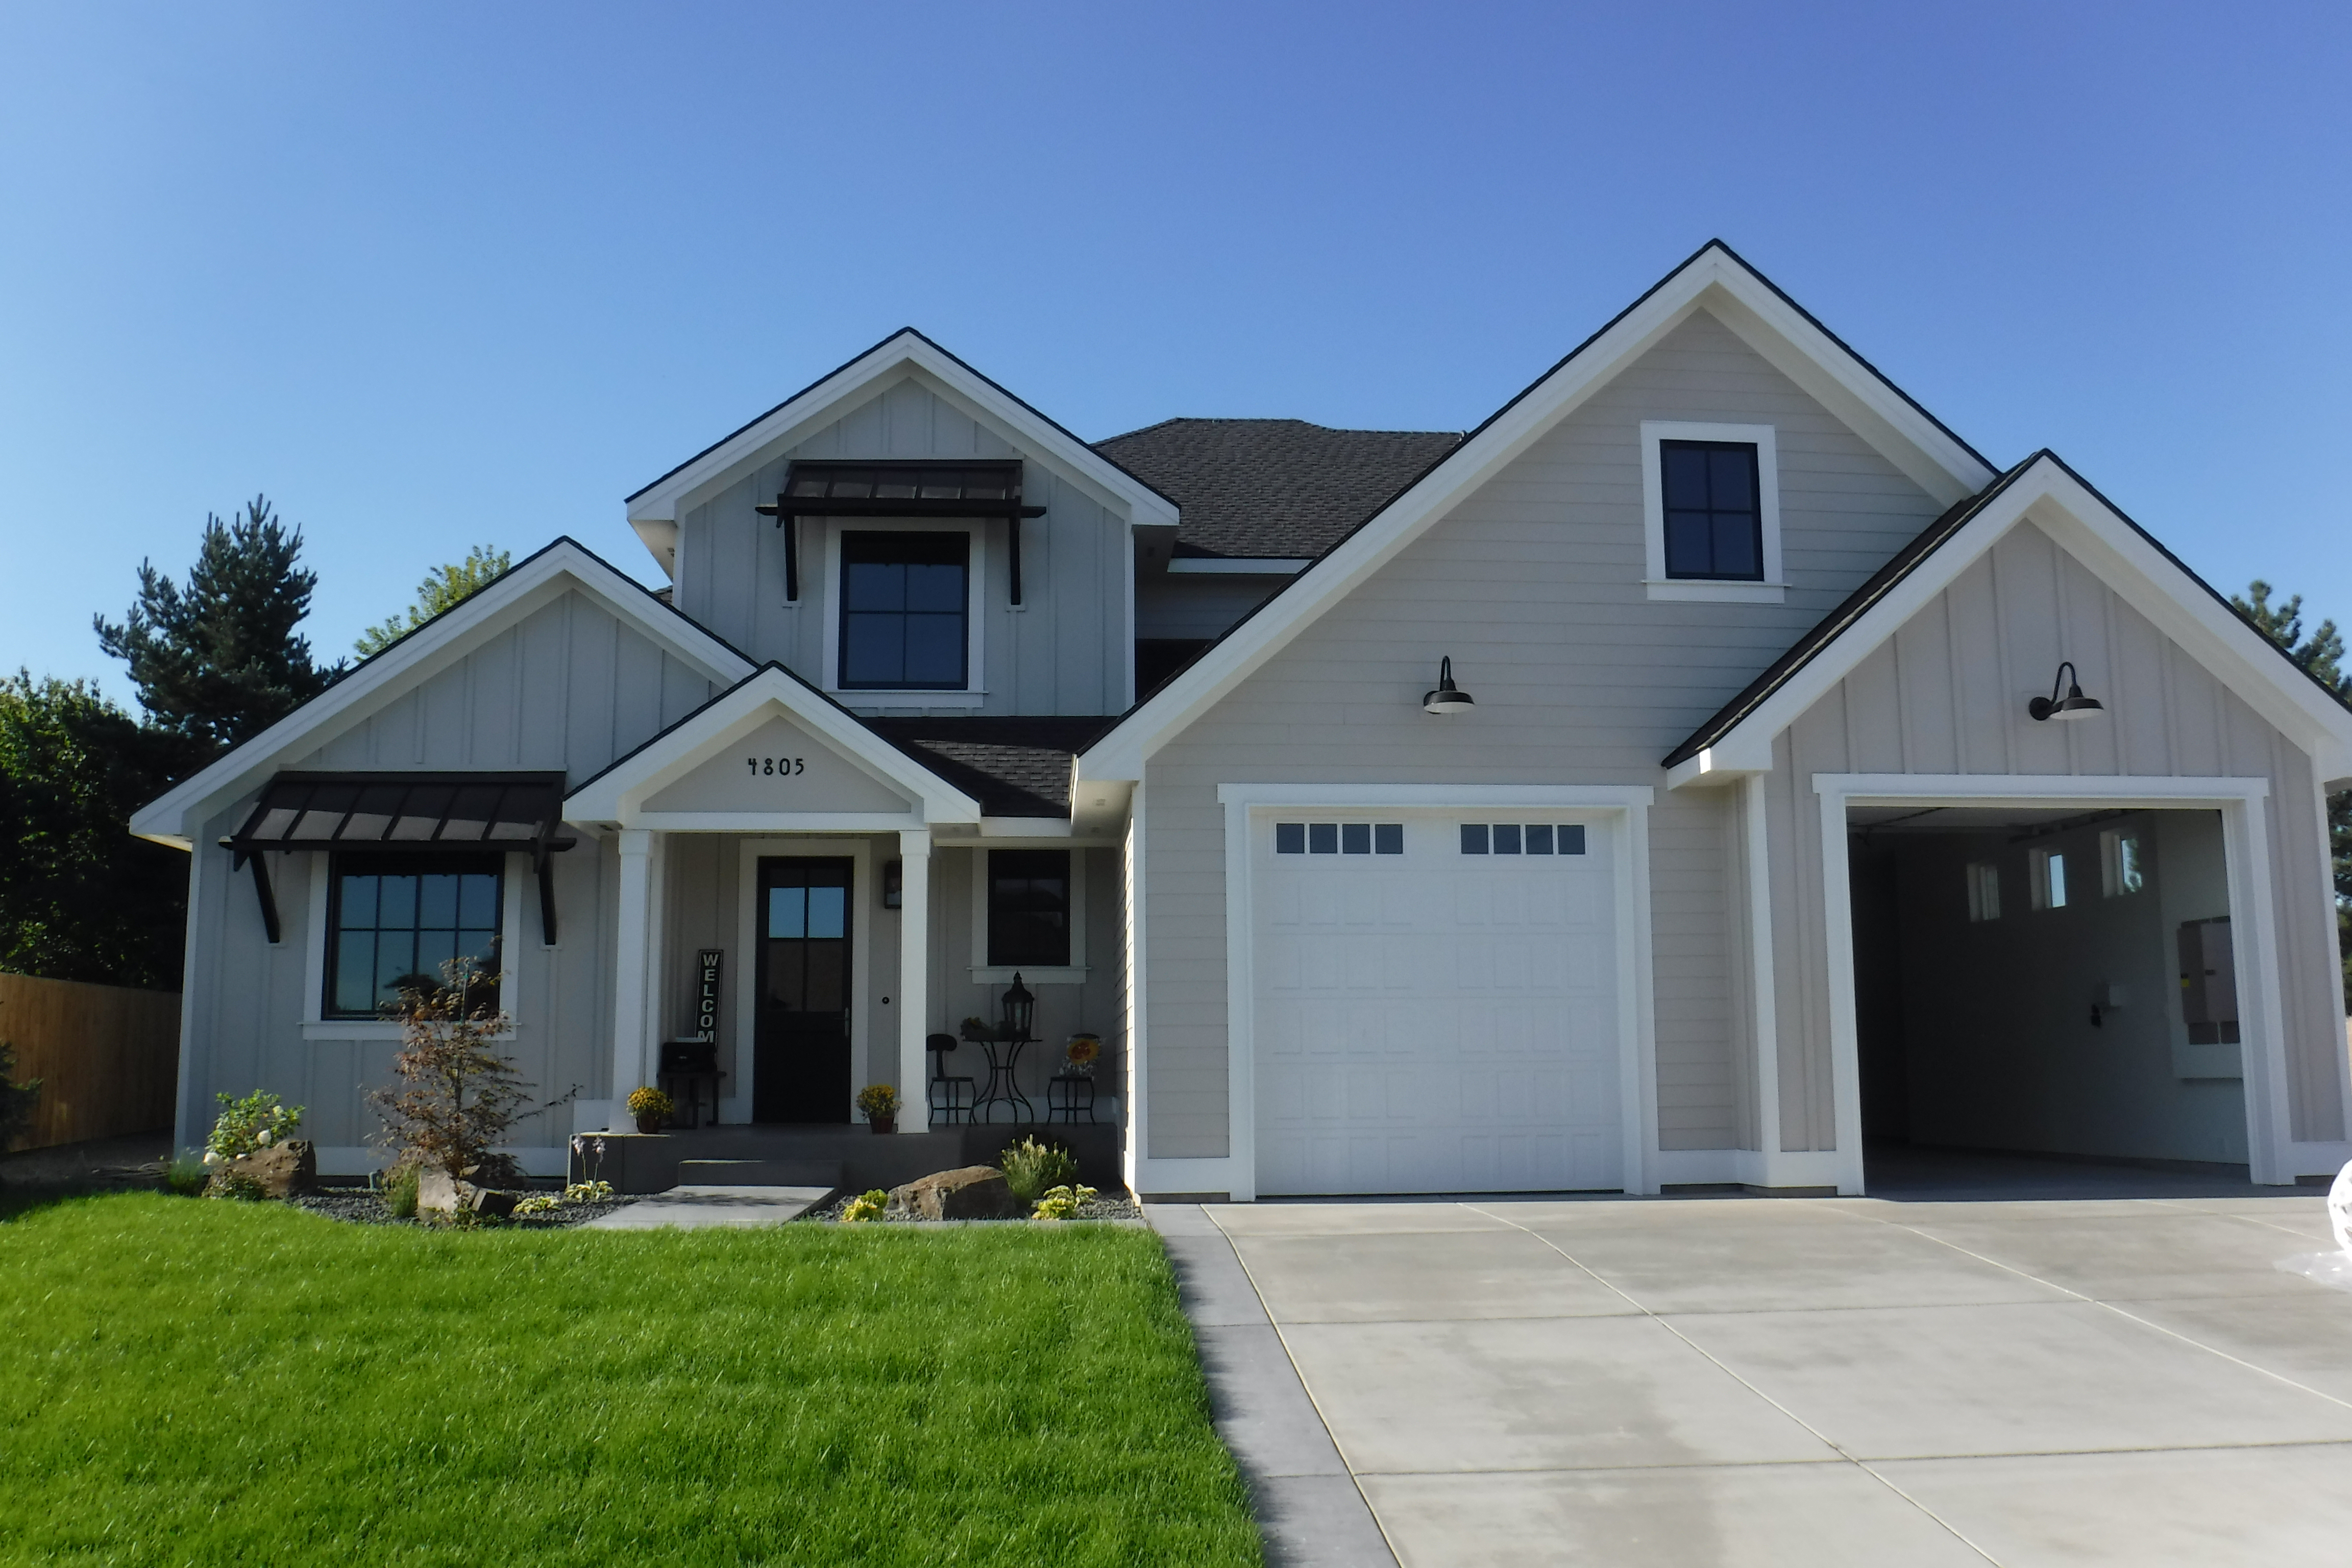 Gretl Crawford, 2016 Parade of Homes